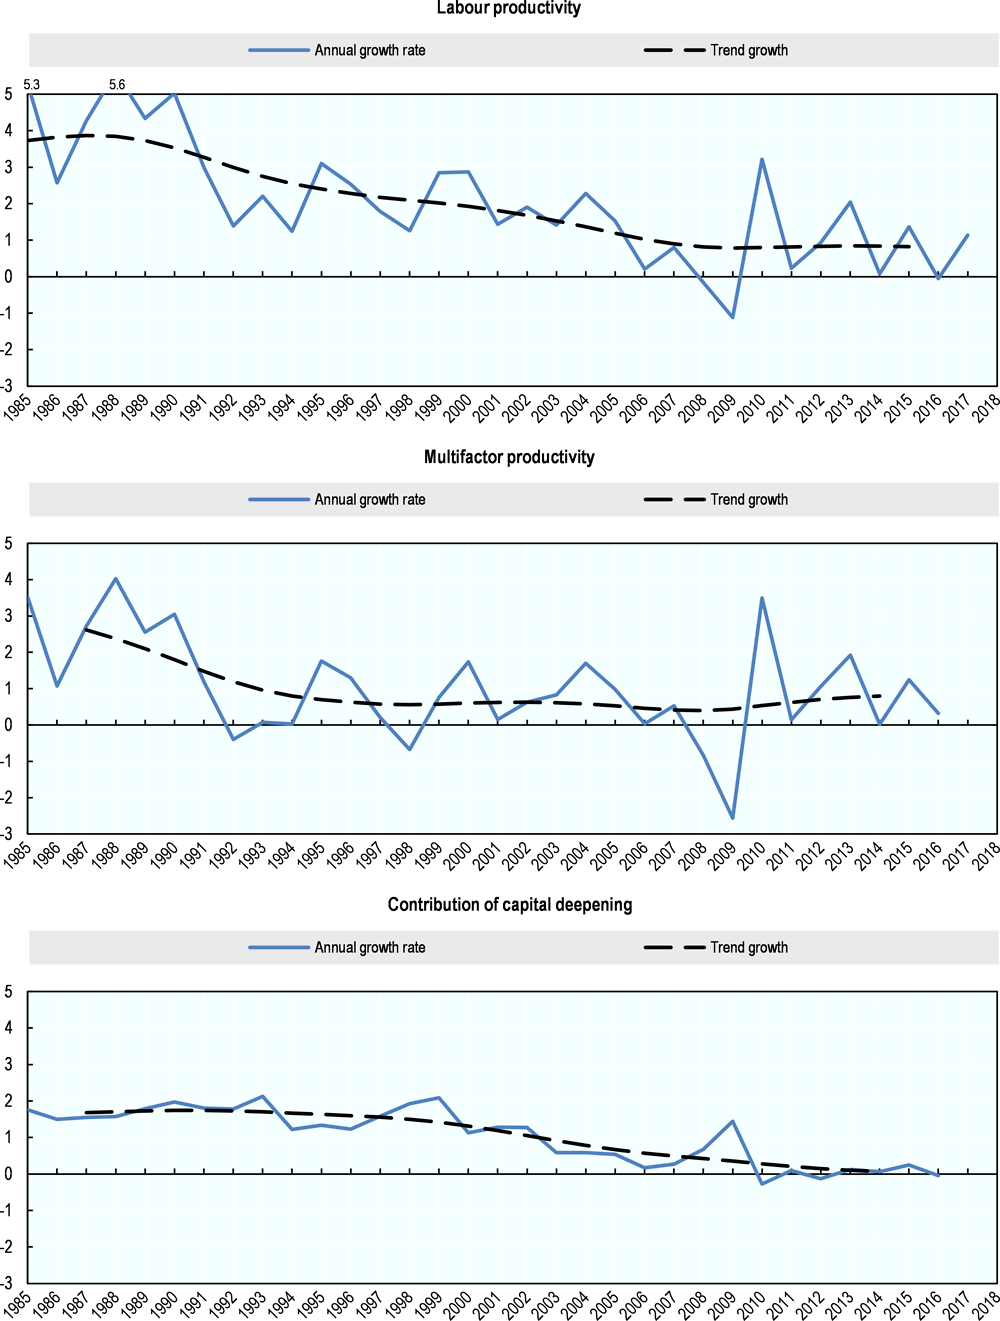 Figure 7.6. Labour productivity growth trend and its components, Japan